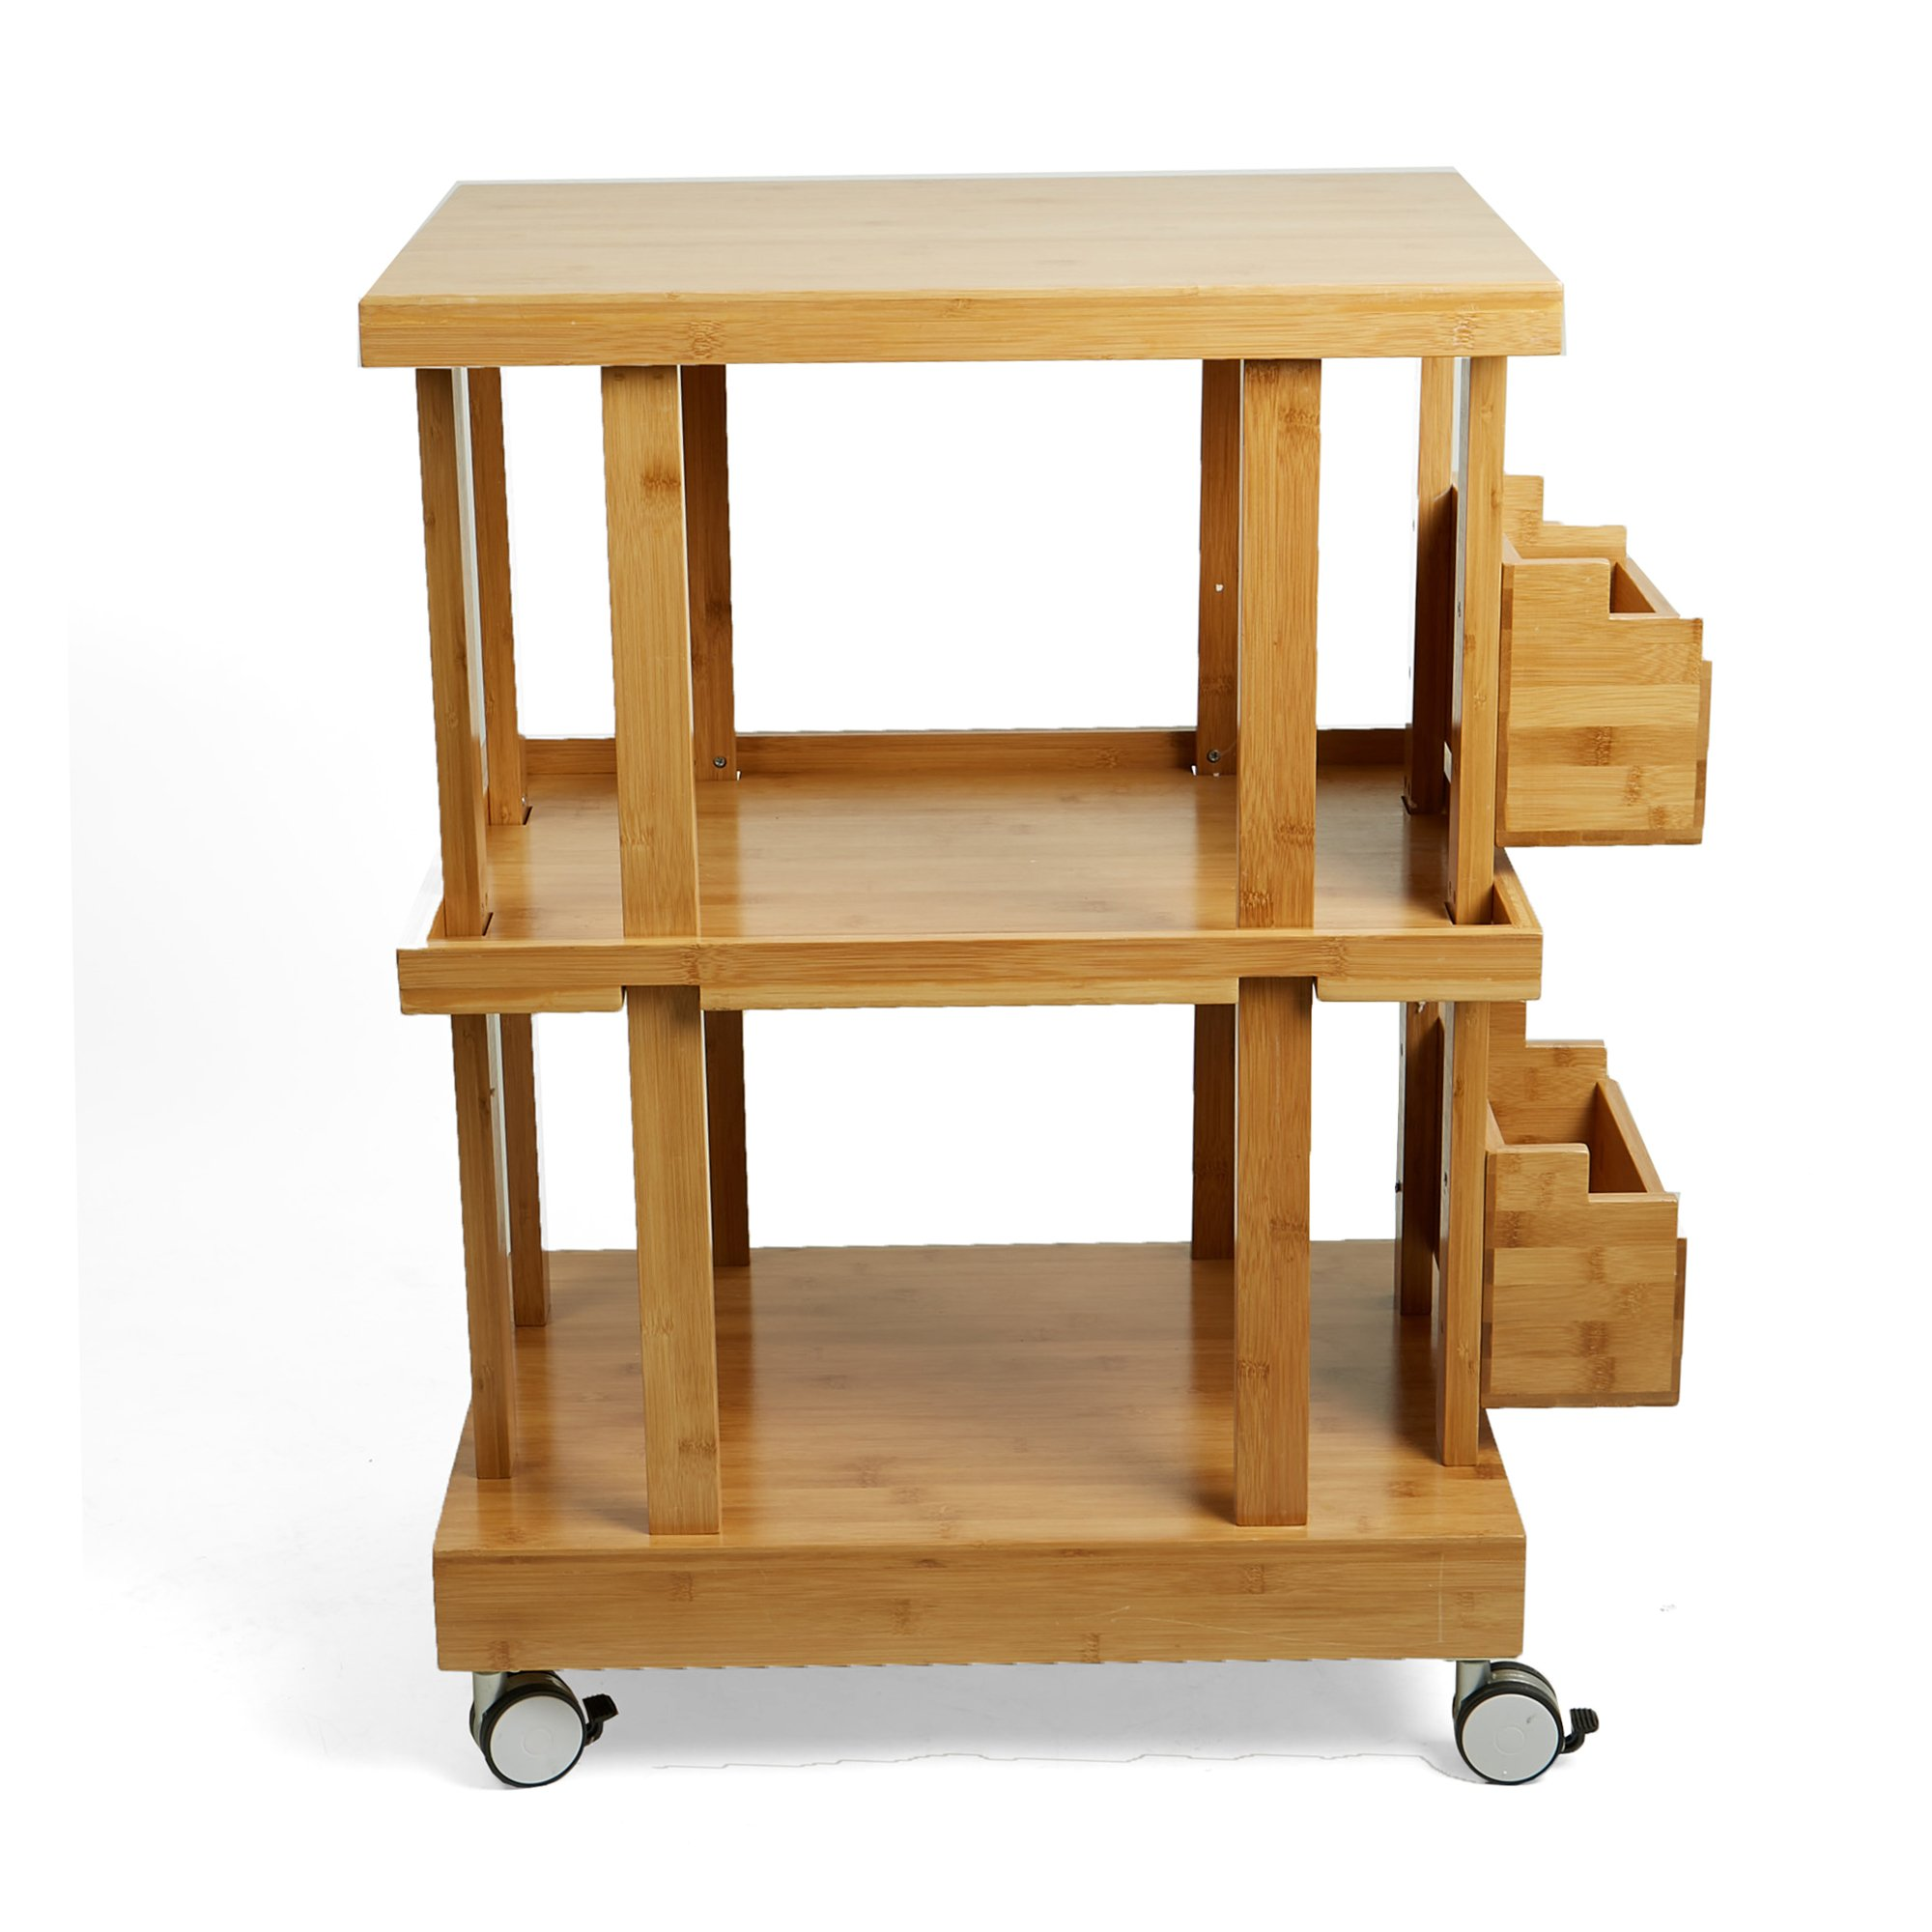 Mind Reader 3-Tier Kitchen Utility Cart with 2 Storage Compartments, Bamboo Wood, Brown by Mind Reader (Image #4)